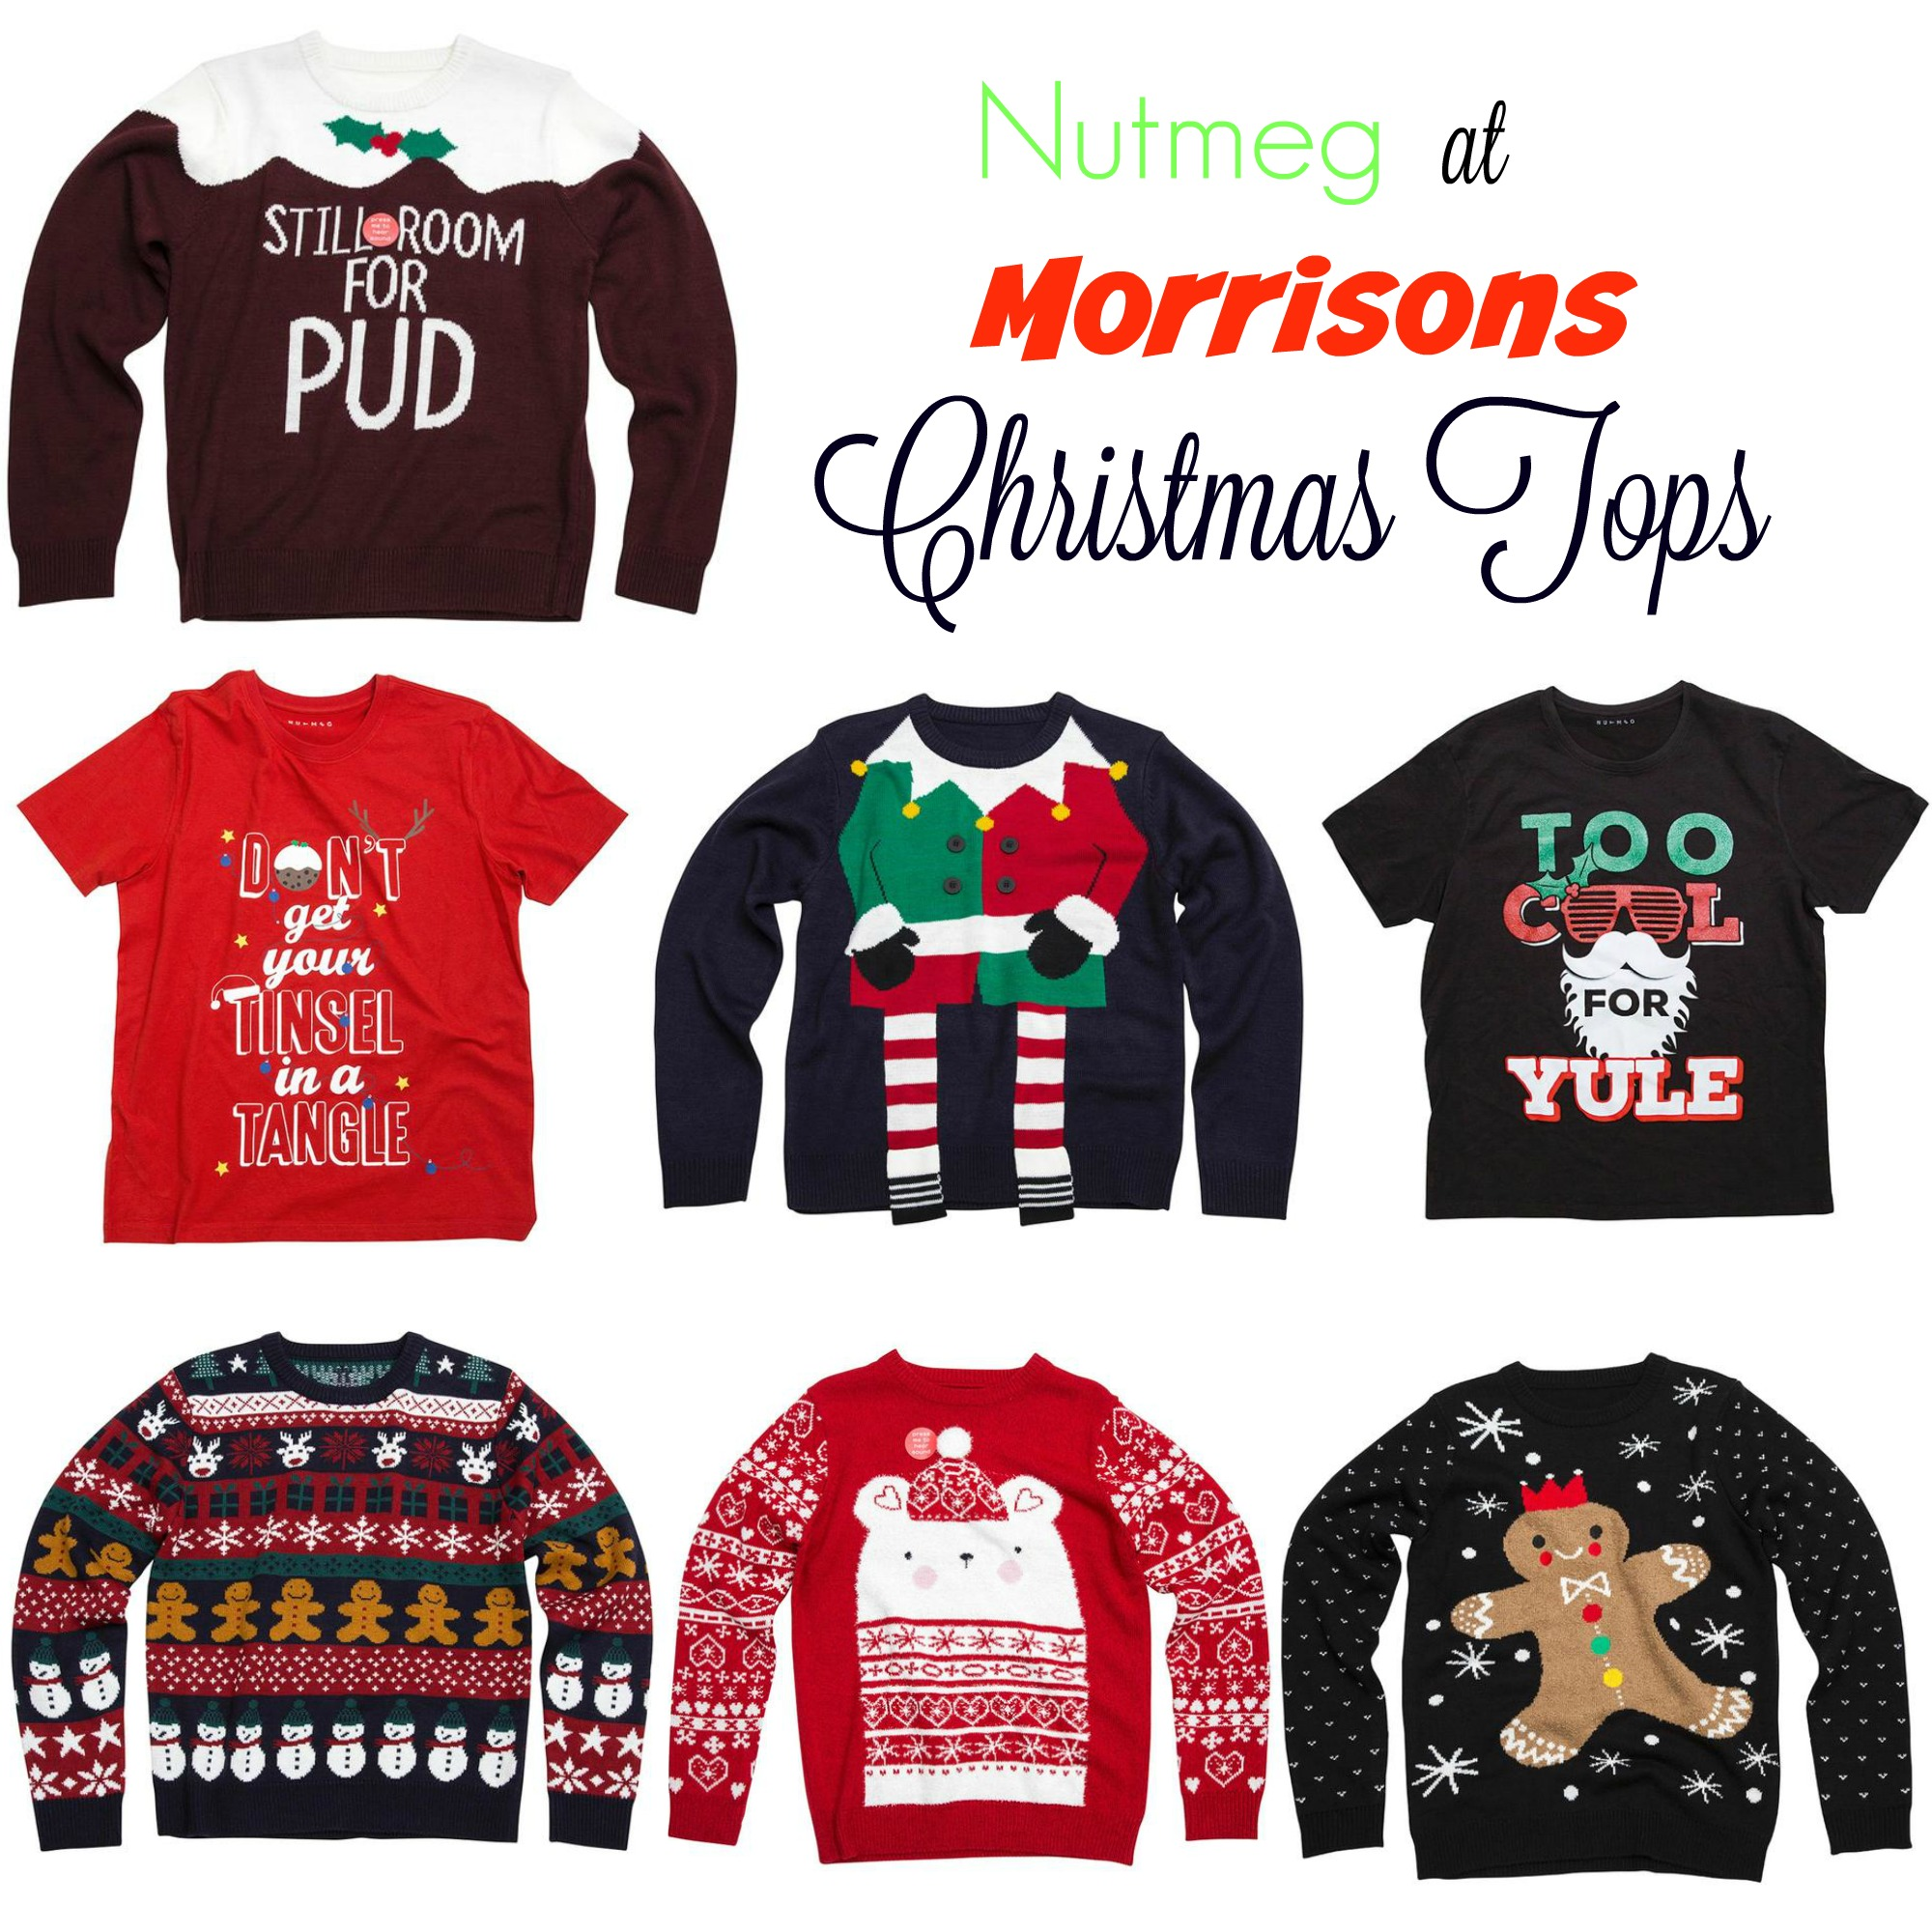 nutmeg-at-morrisons-christmas-tops